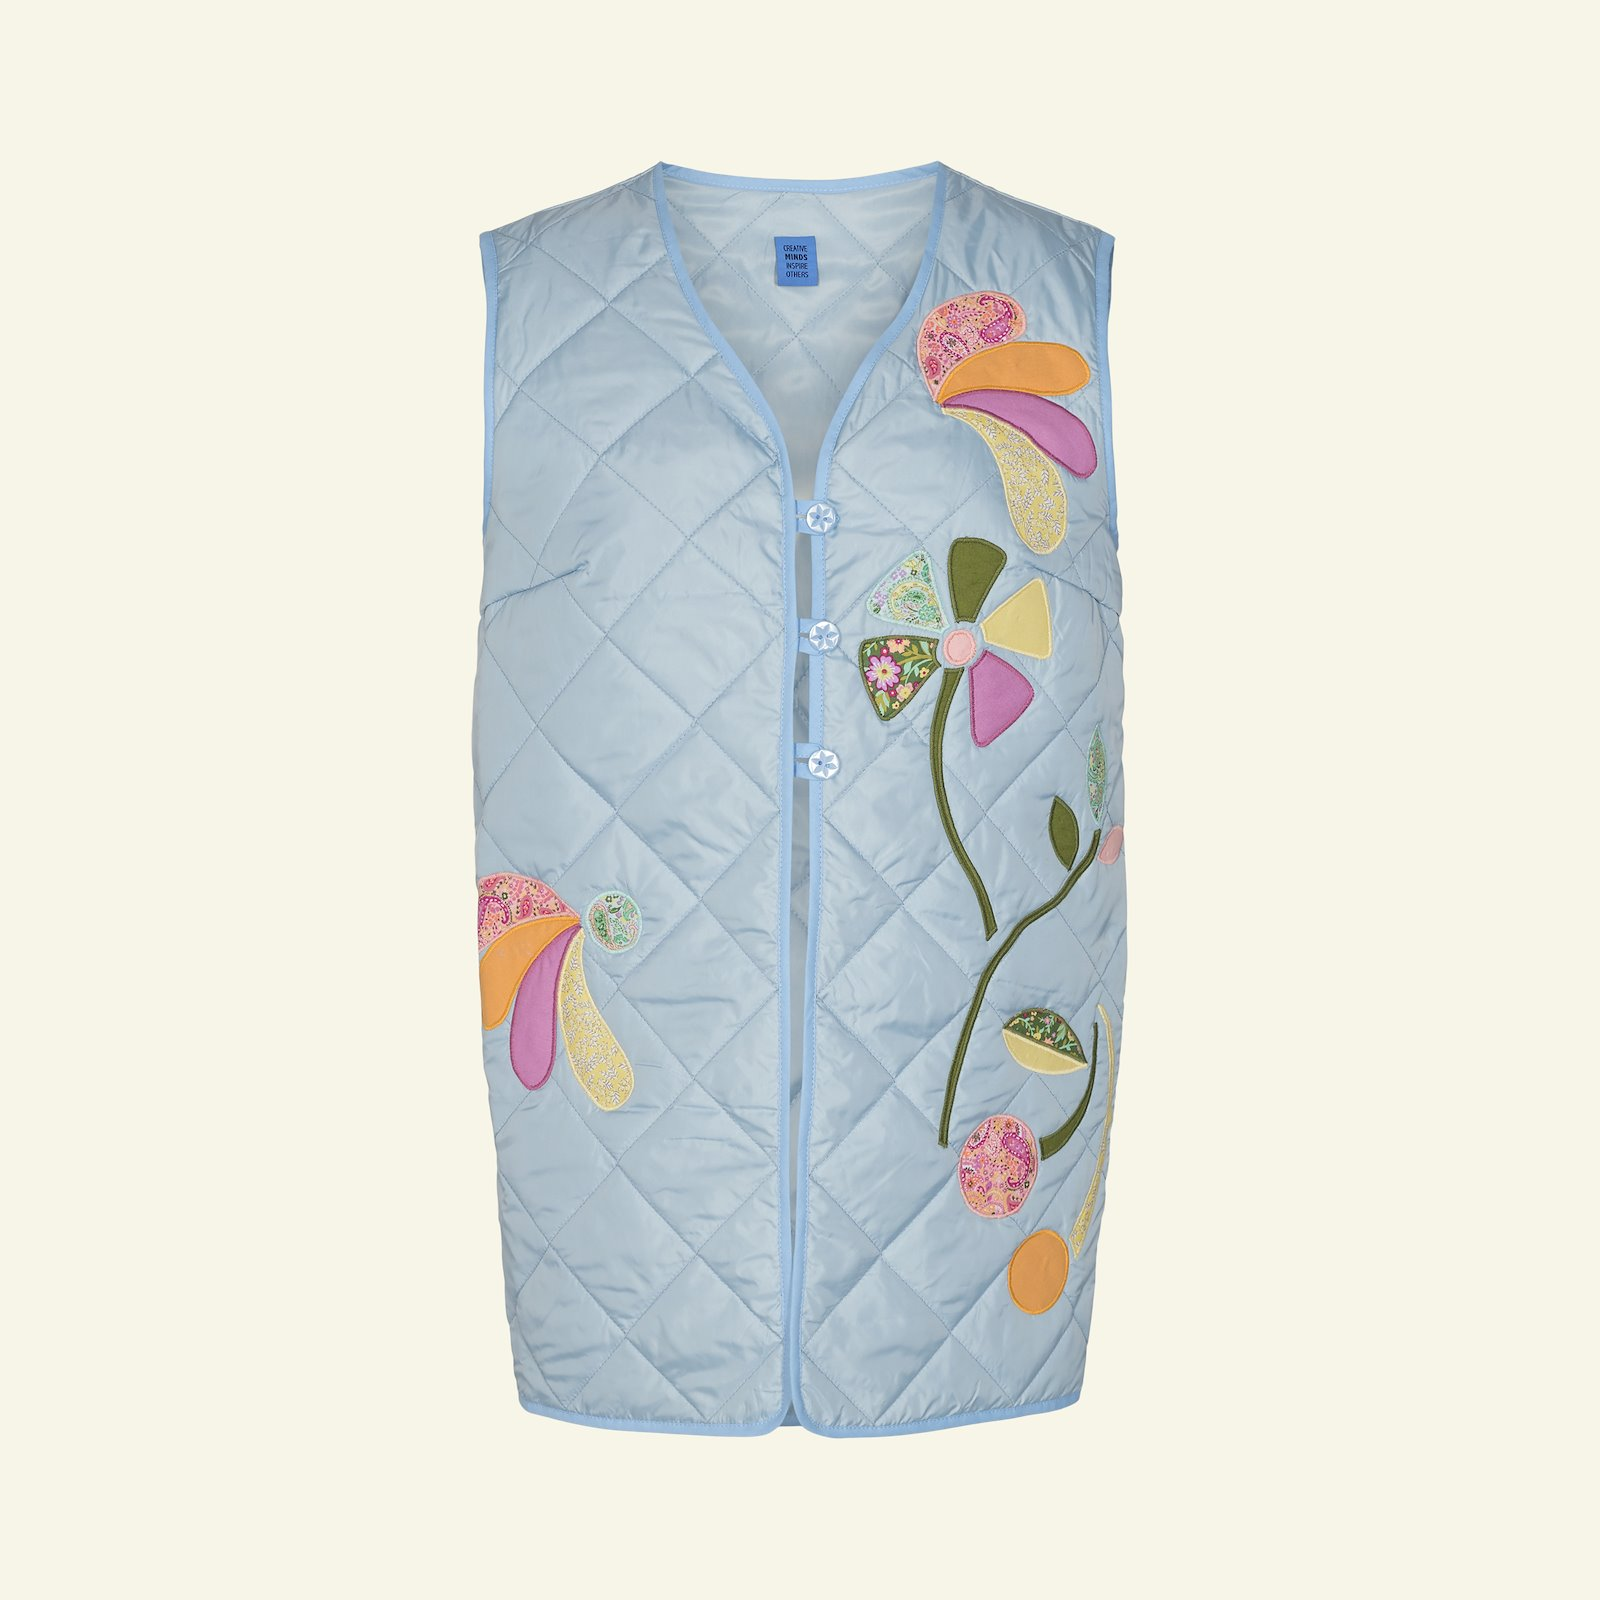 Quilted jacket and waistcoat, 42/14 p24047_920225_66019_33224_sskit